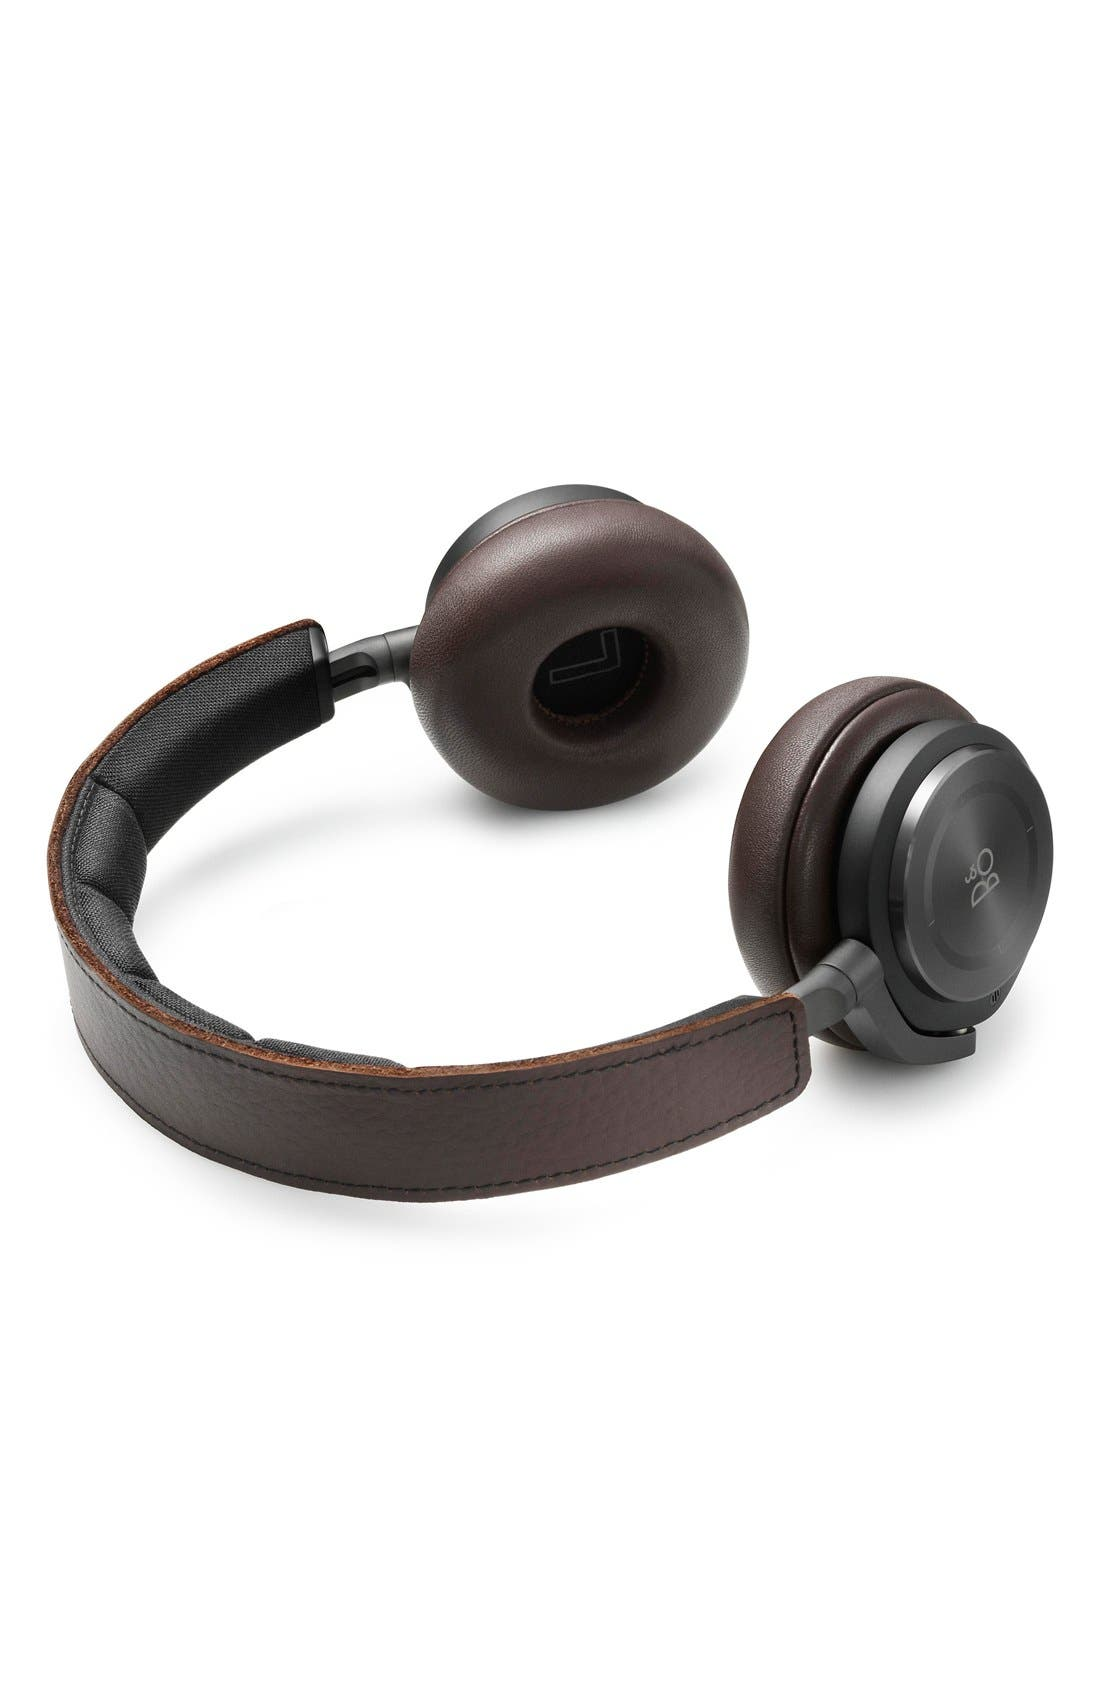 H8 ANC Over-Ear Bluetooth<sup>®</sup> Headphones,                             Alternate thumbnail 4, color,                             206